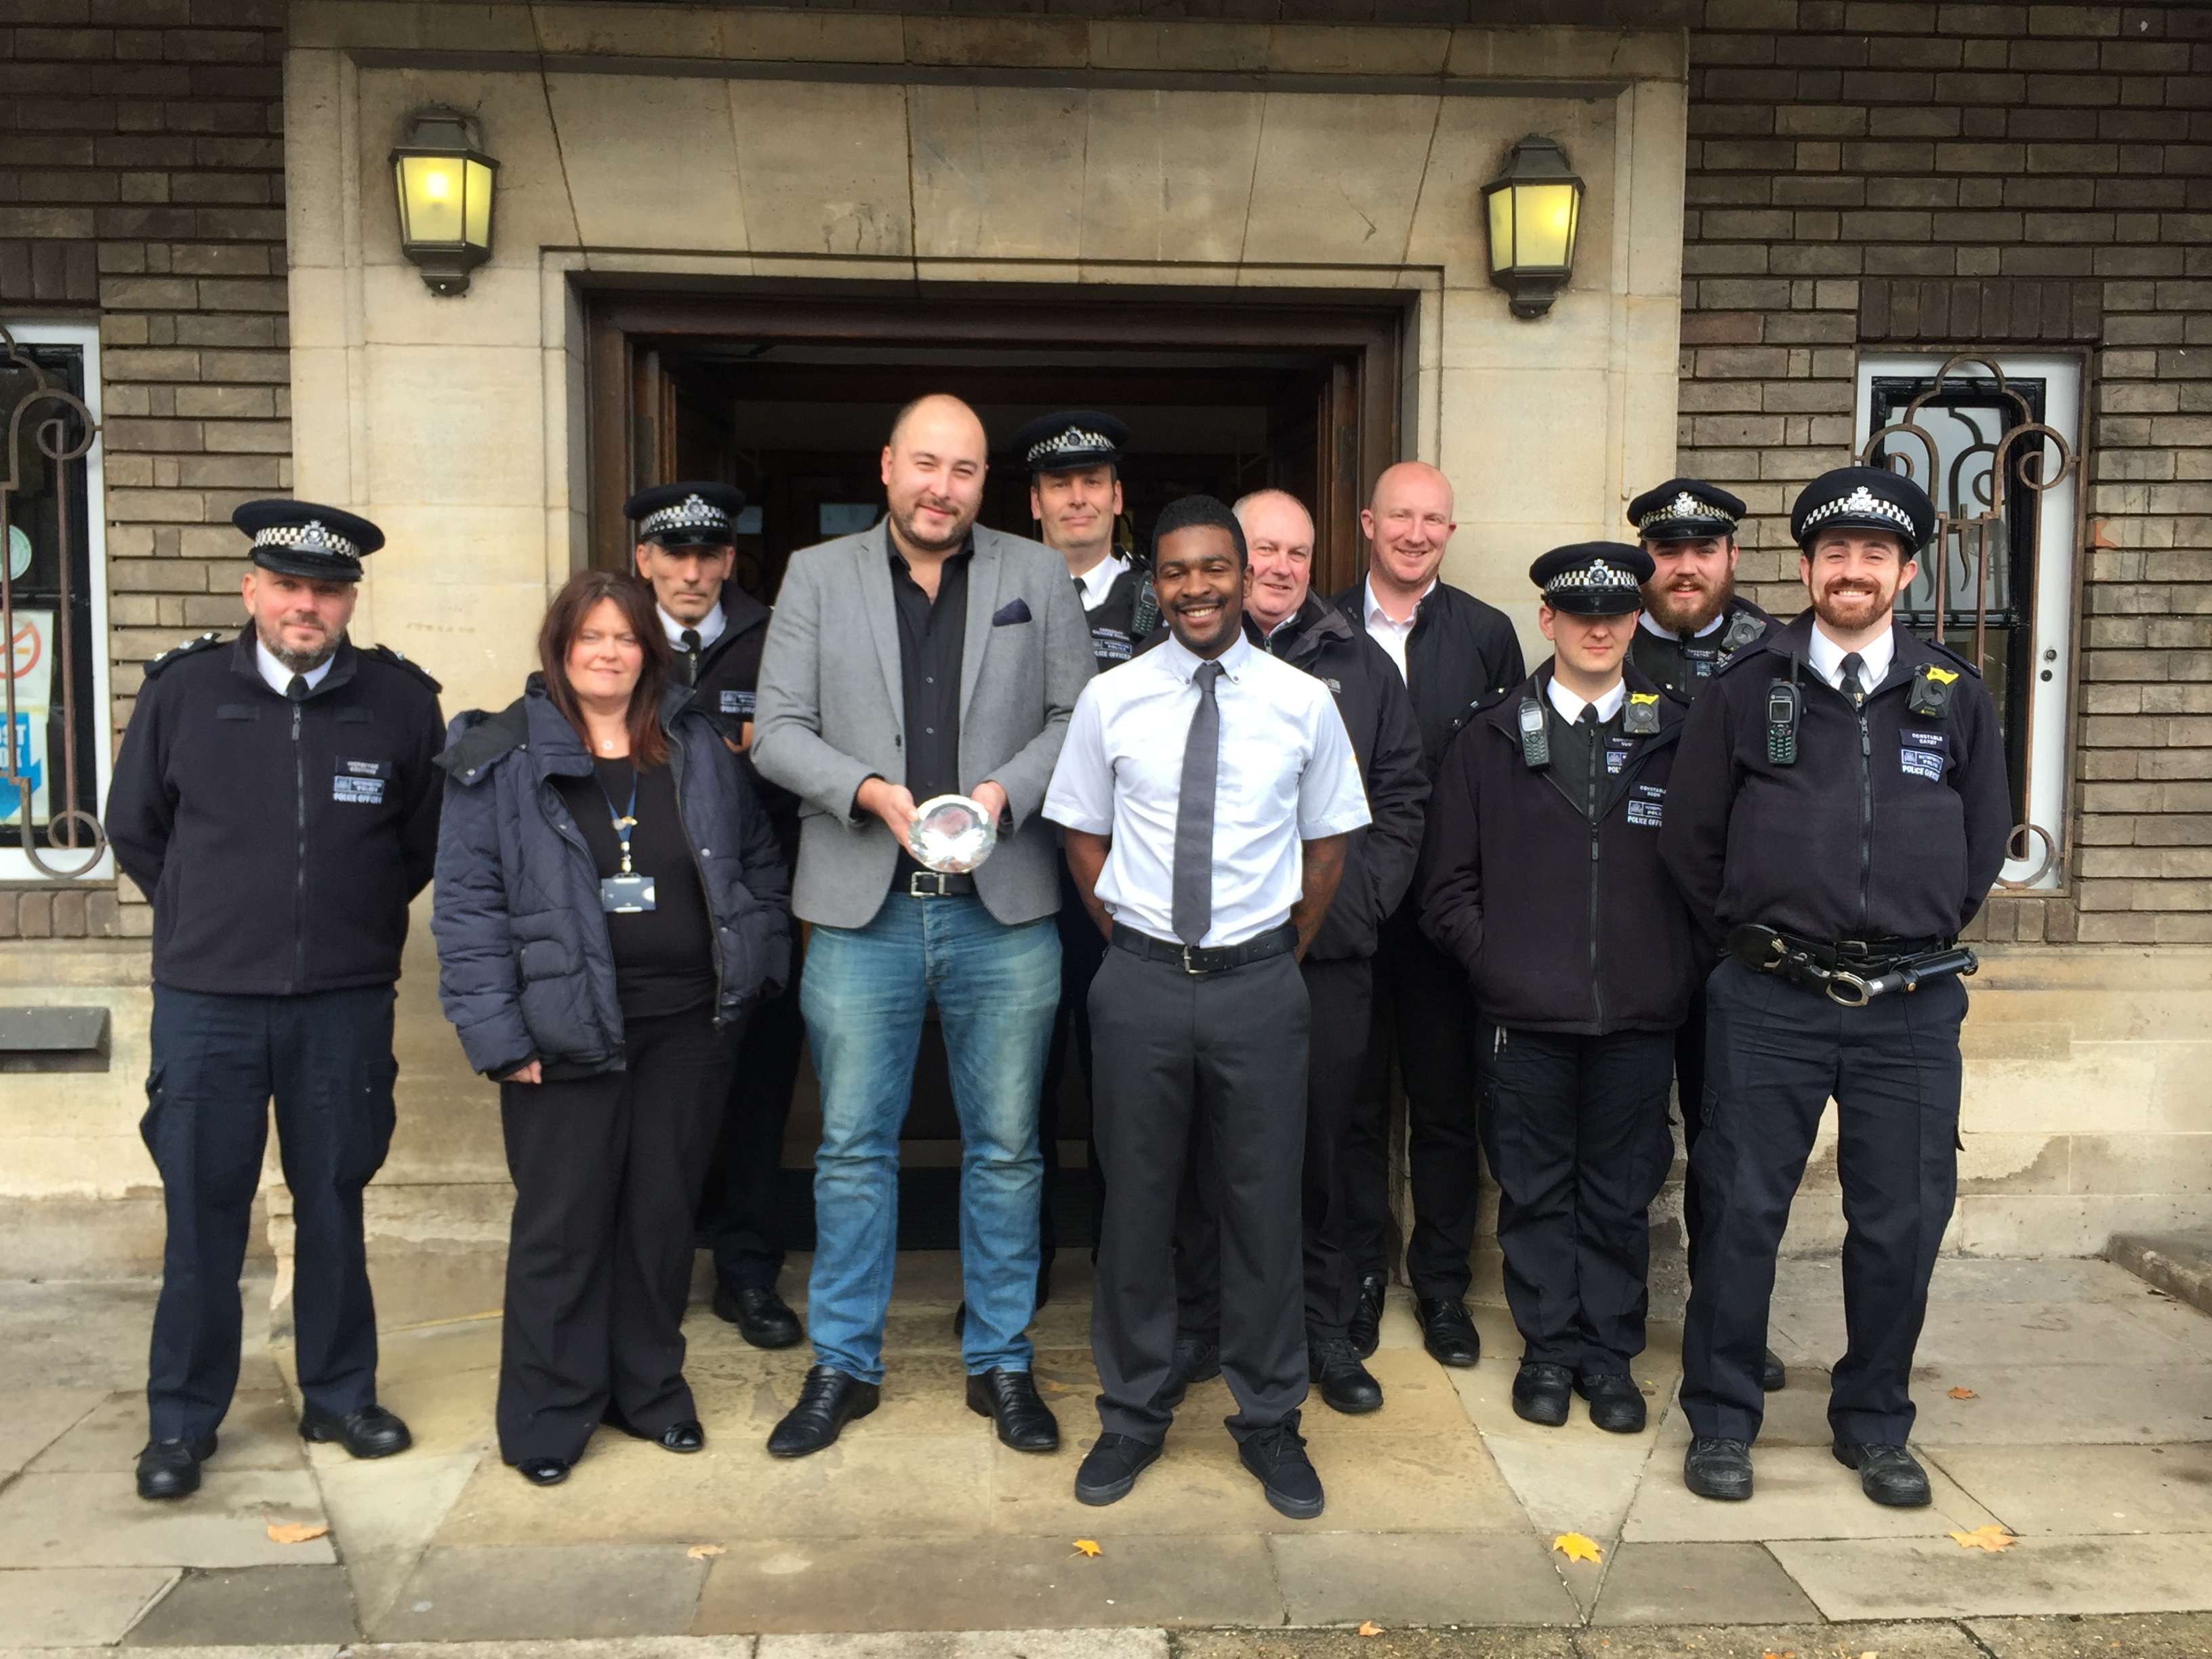 Romford town pubwatch partnership